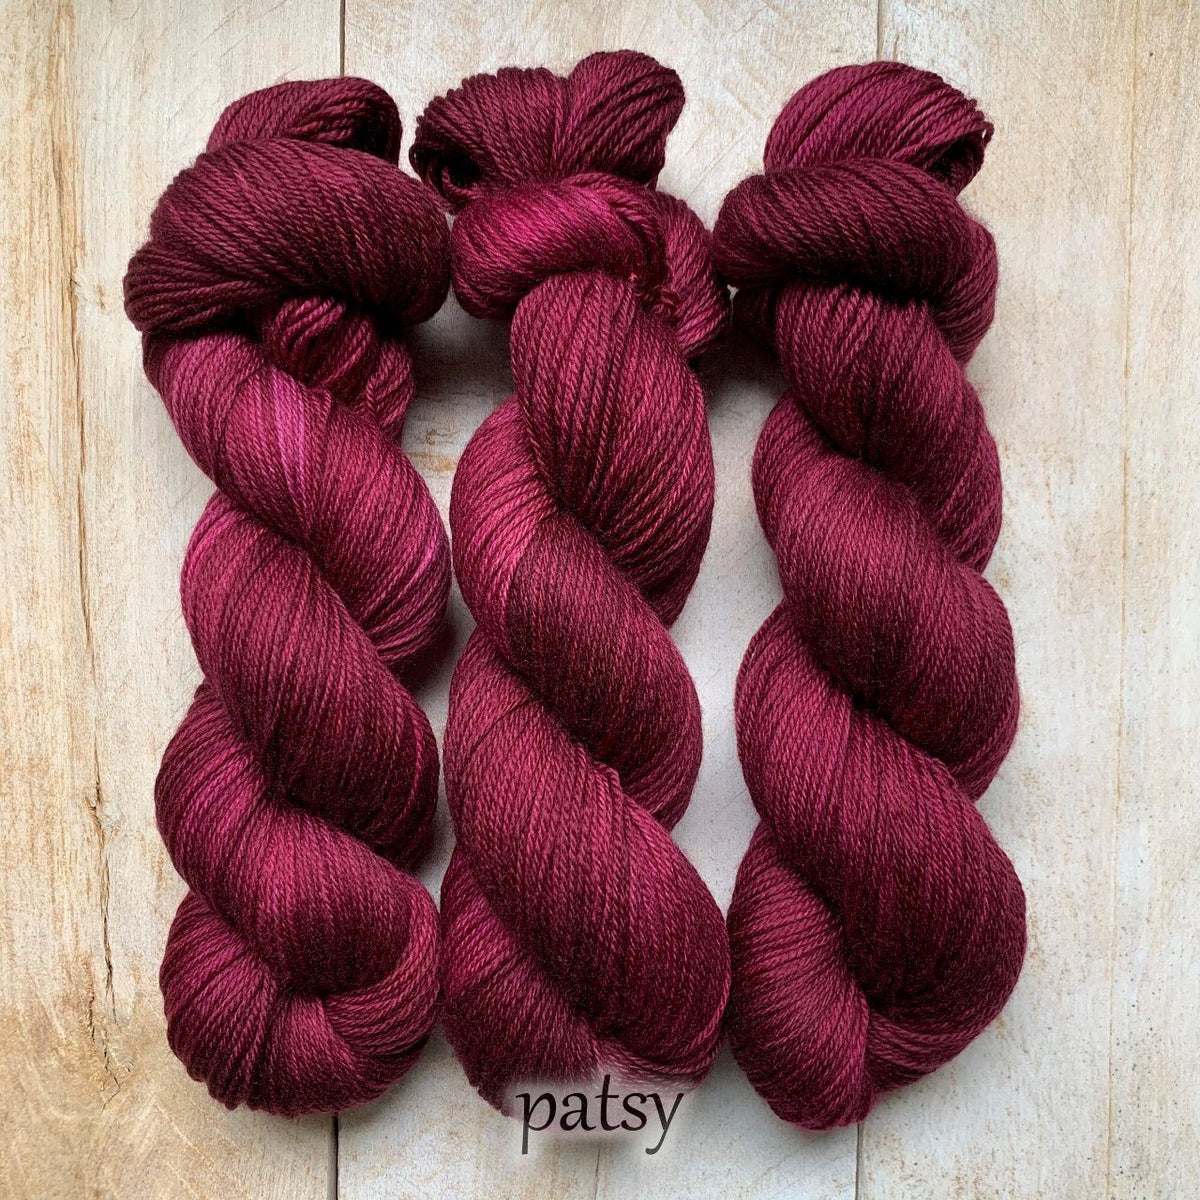 PATSY by Louise Robert Design | SUPER SOCK hand-dyed semi-solid yarn